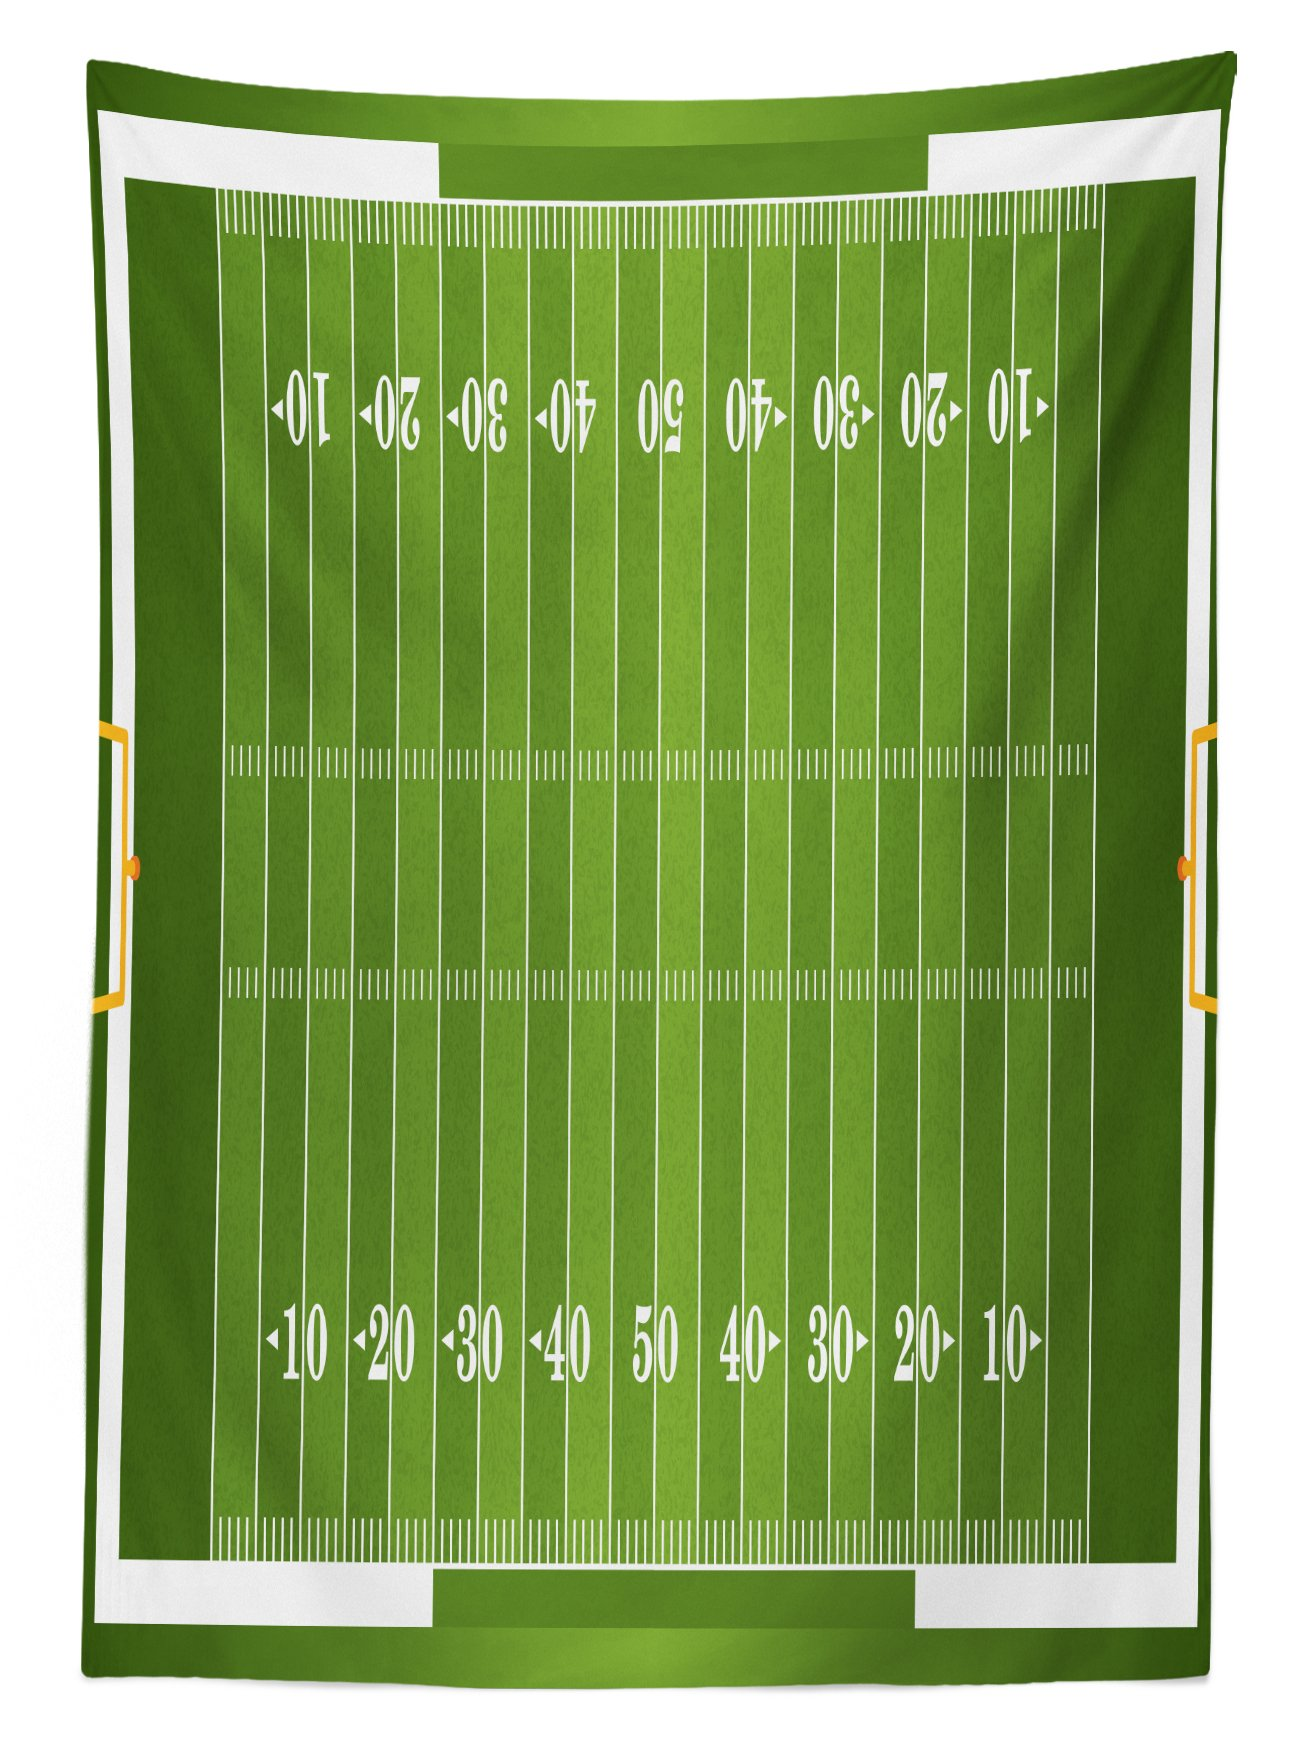 Ambesonne Football Tablecloth, Sports Field in Green Gridiron Yard Competitive Games College Teamwork Superbowl, Dining Room Kitchen Rectangular Table Cover, 60 W X 90 L inches, Green White by Ambesonne (Image #2)